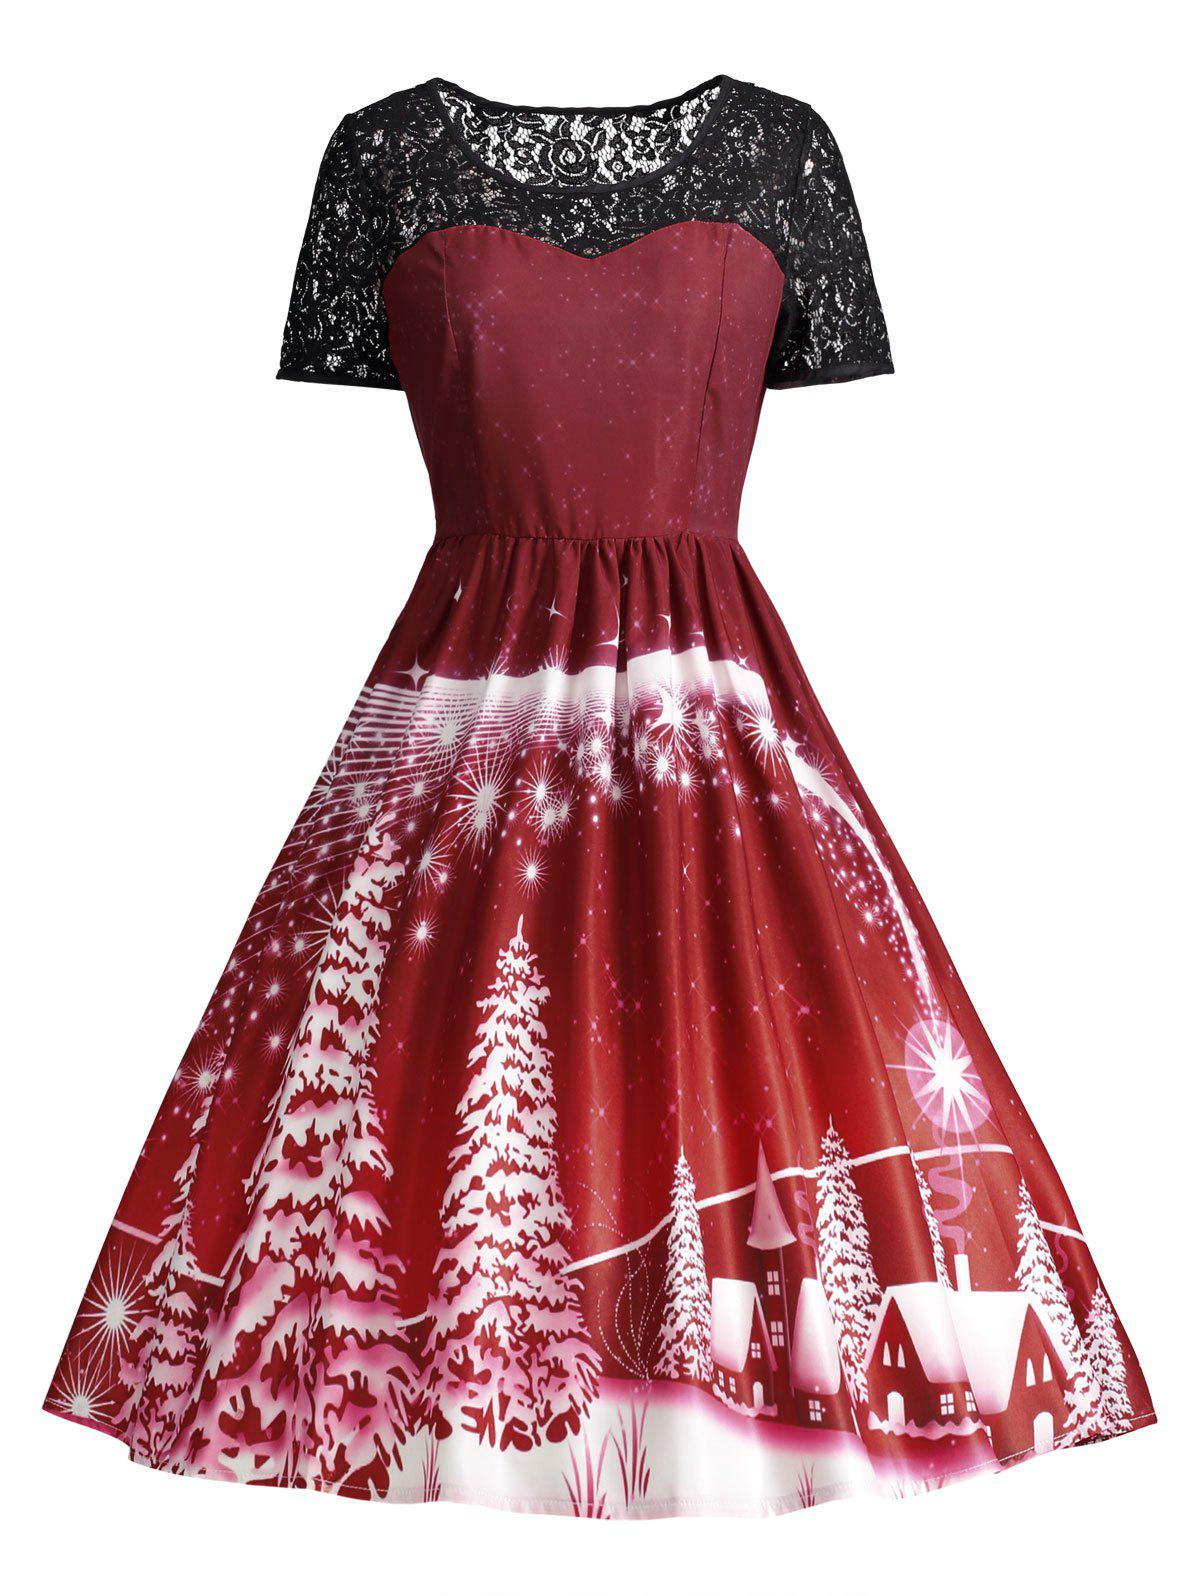 Ugly Christmas Party Lace Trim Vintage DressWOMEN<br><br>Size: XL; Color: DARK RED; Style: Cute; Material: Polyester,Spandex; Silhouette: A-Line; Dresses Length: Knee-Length; Neckline: Round Collar; Sleeve Length: Short Sleeves; Pattern Type: Others; With Belt: No; Season: Fall,Spring; Weight: 0.3150kg; Package Contents: 1 x Dress;